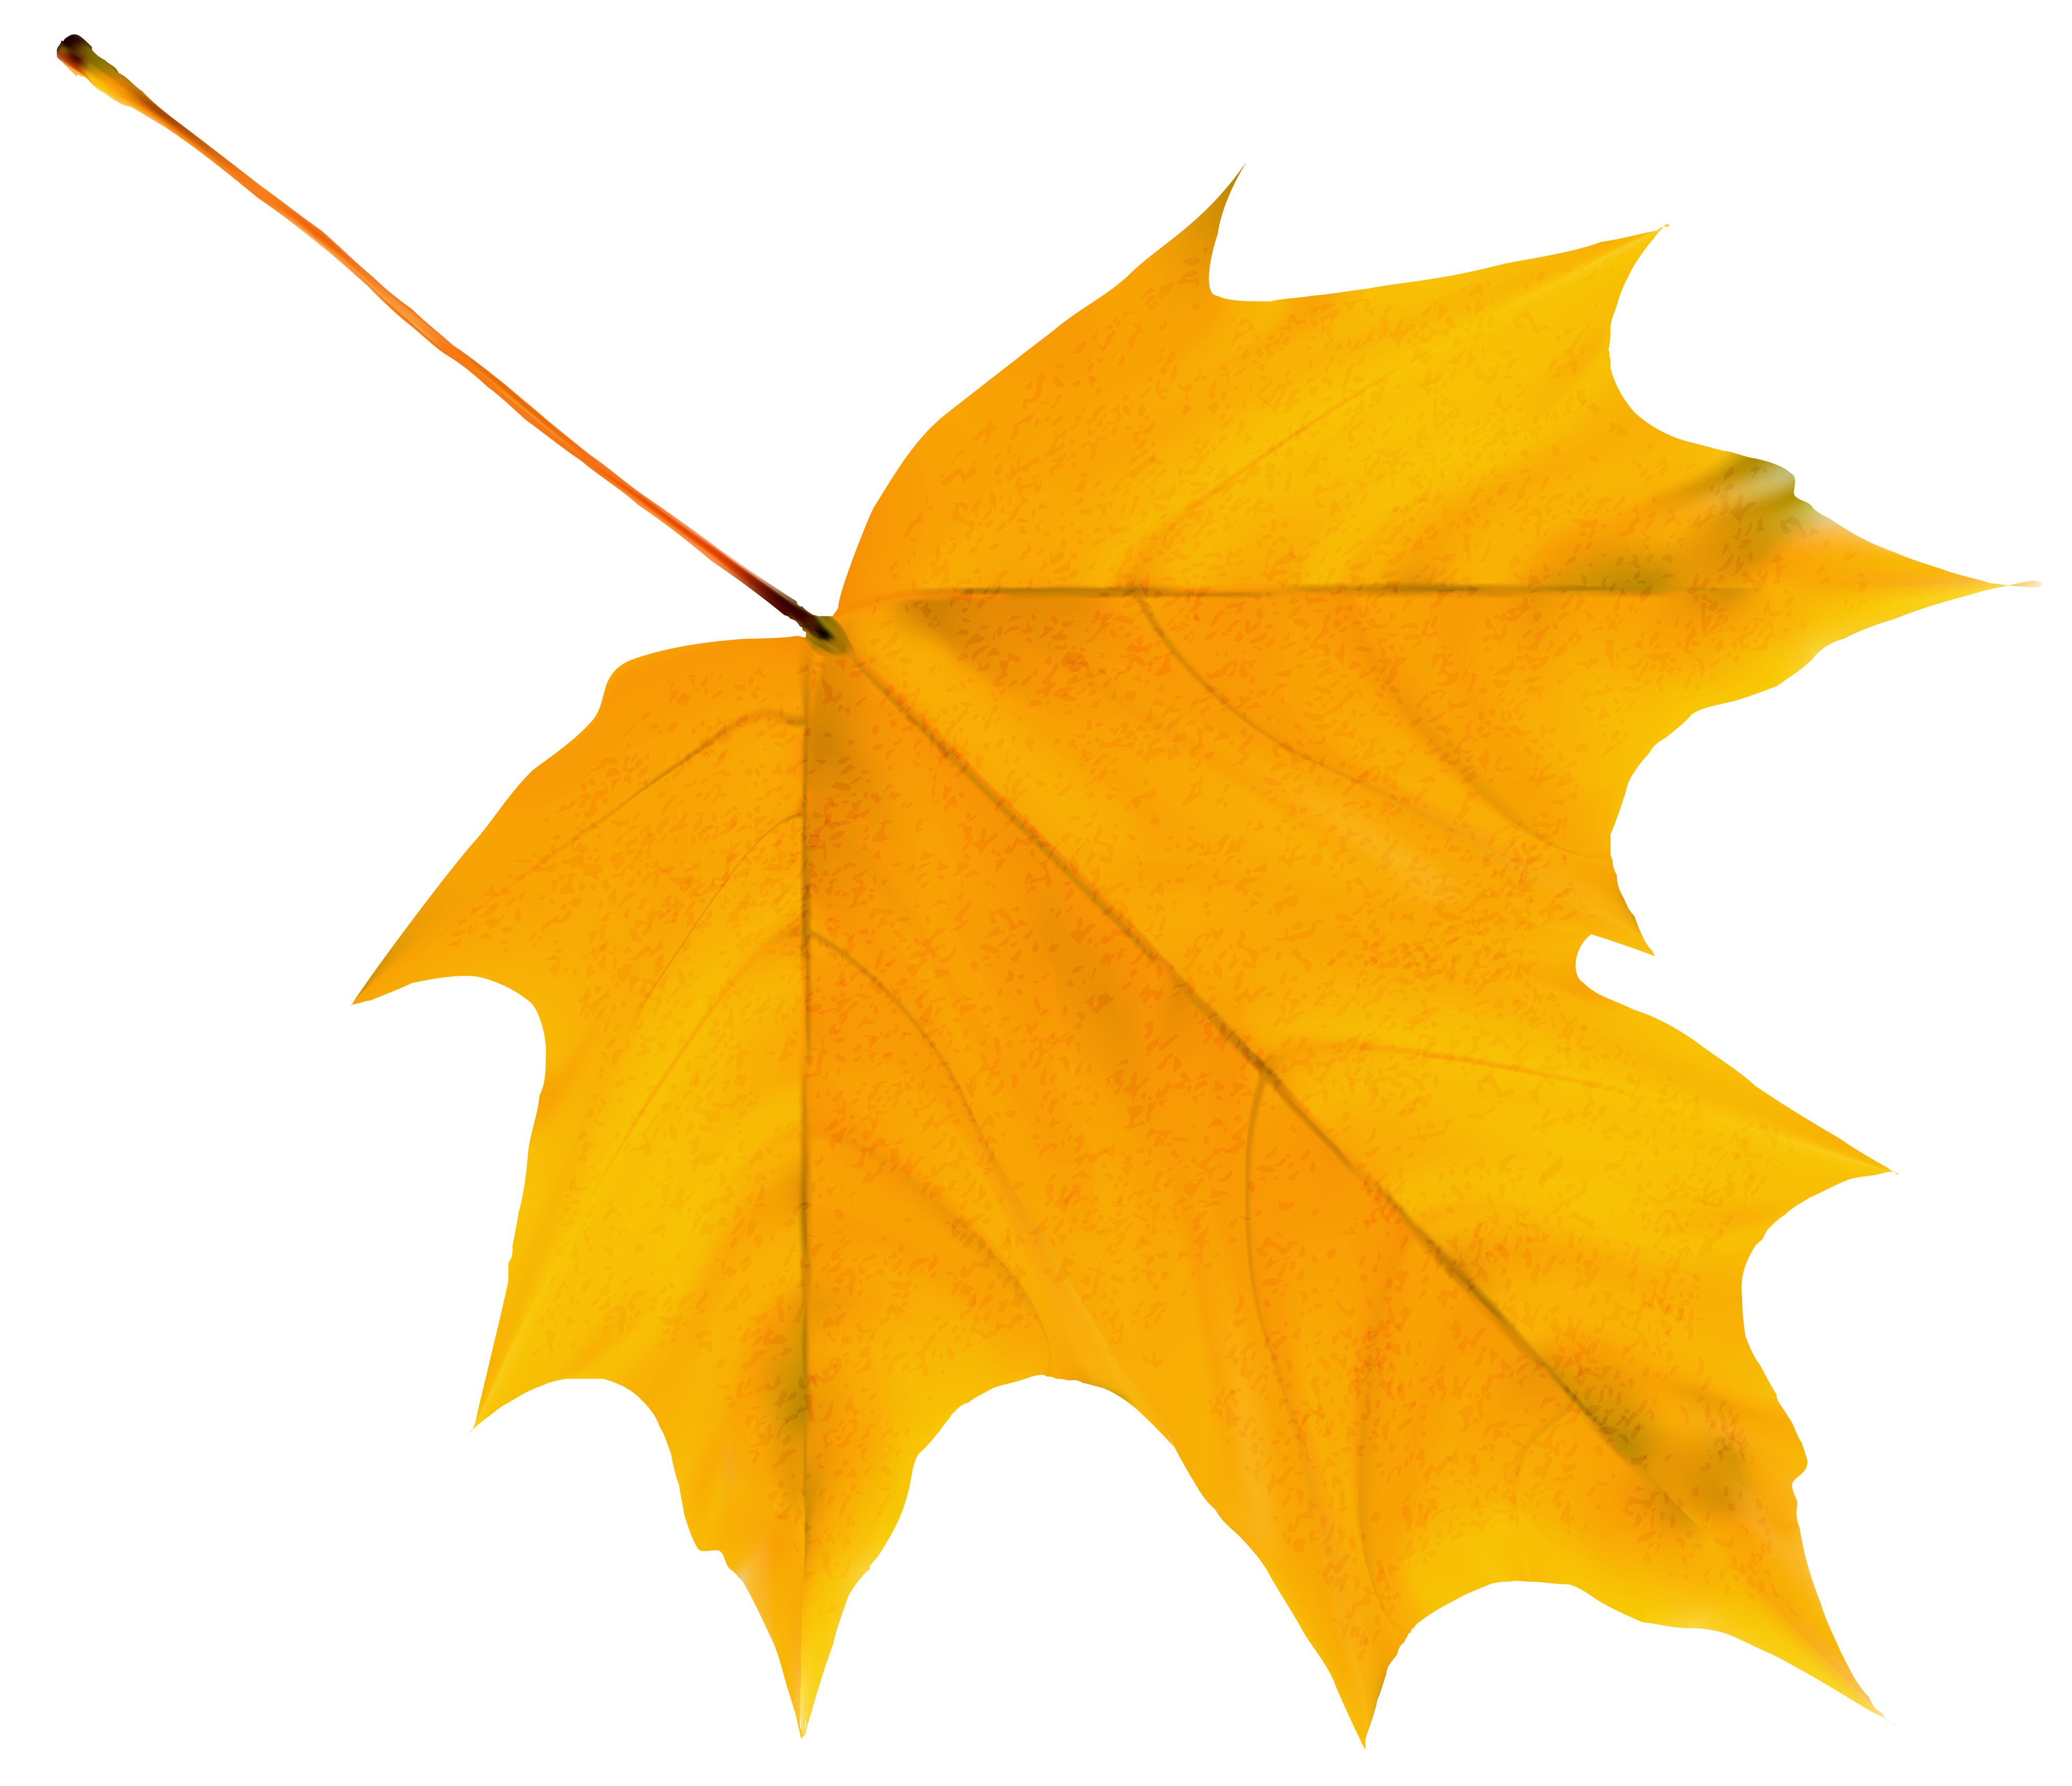 Yellow leaf clipart - Clipground